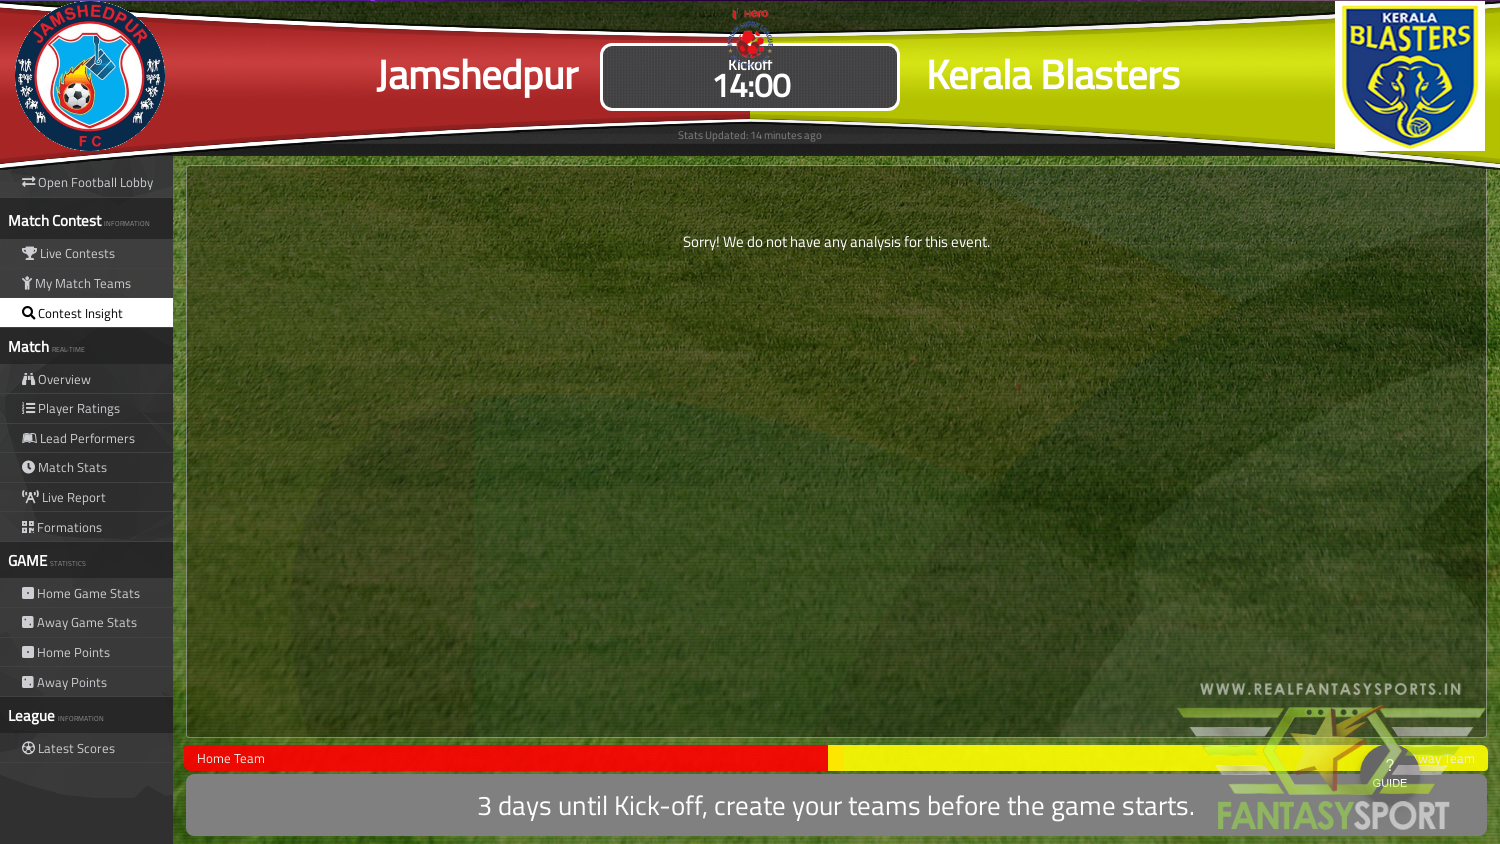 Dream Team Pick For Jamshedpur Vs Kerala Blasters